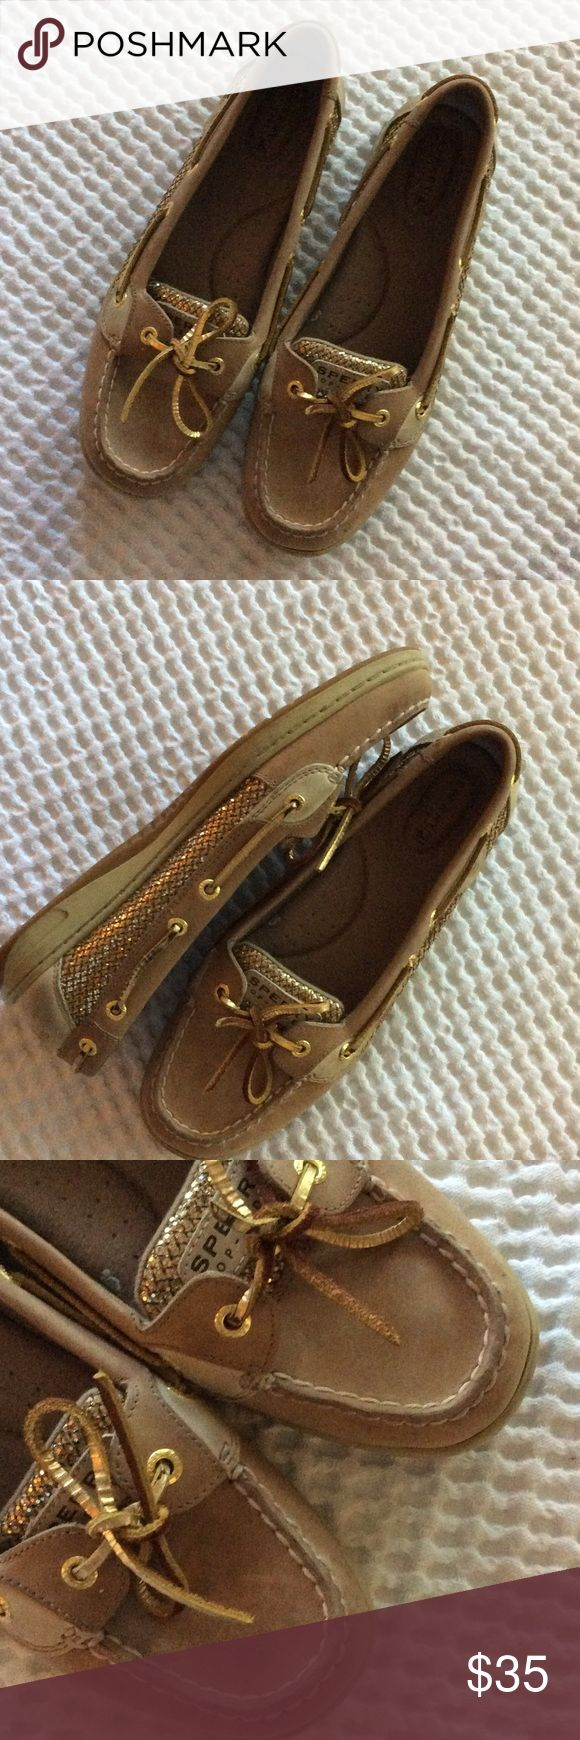 Sperry Top Sider shoes Golden glitter, no spots, super clean. Sperry Top-Sider Shoes Moccasins